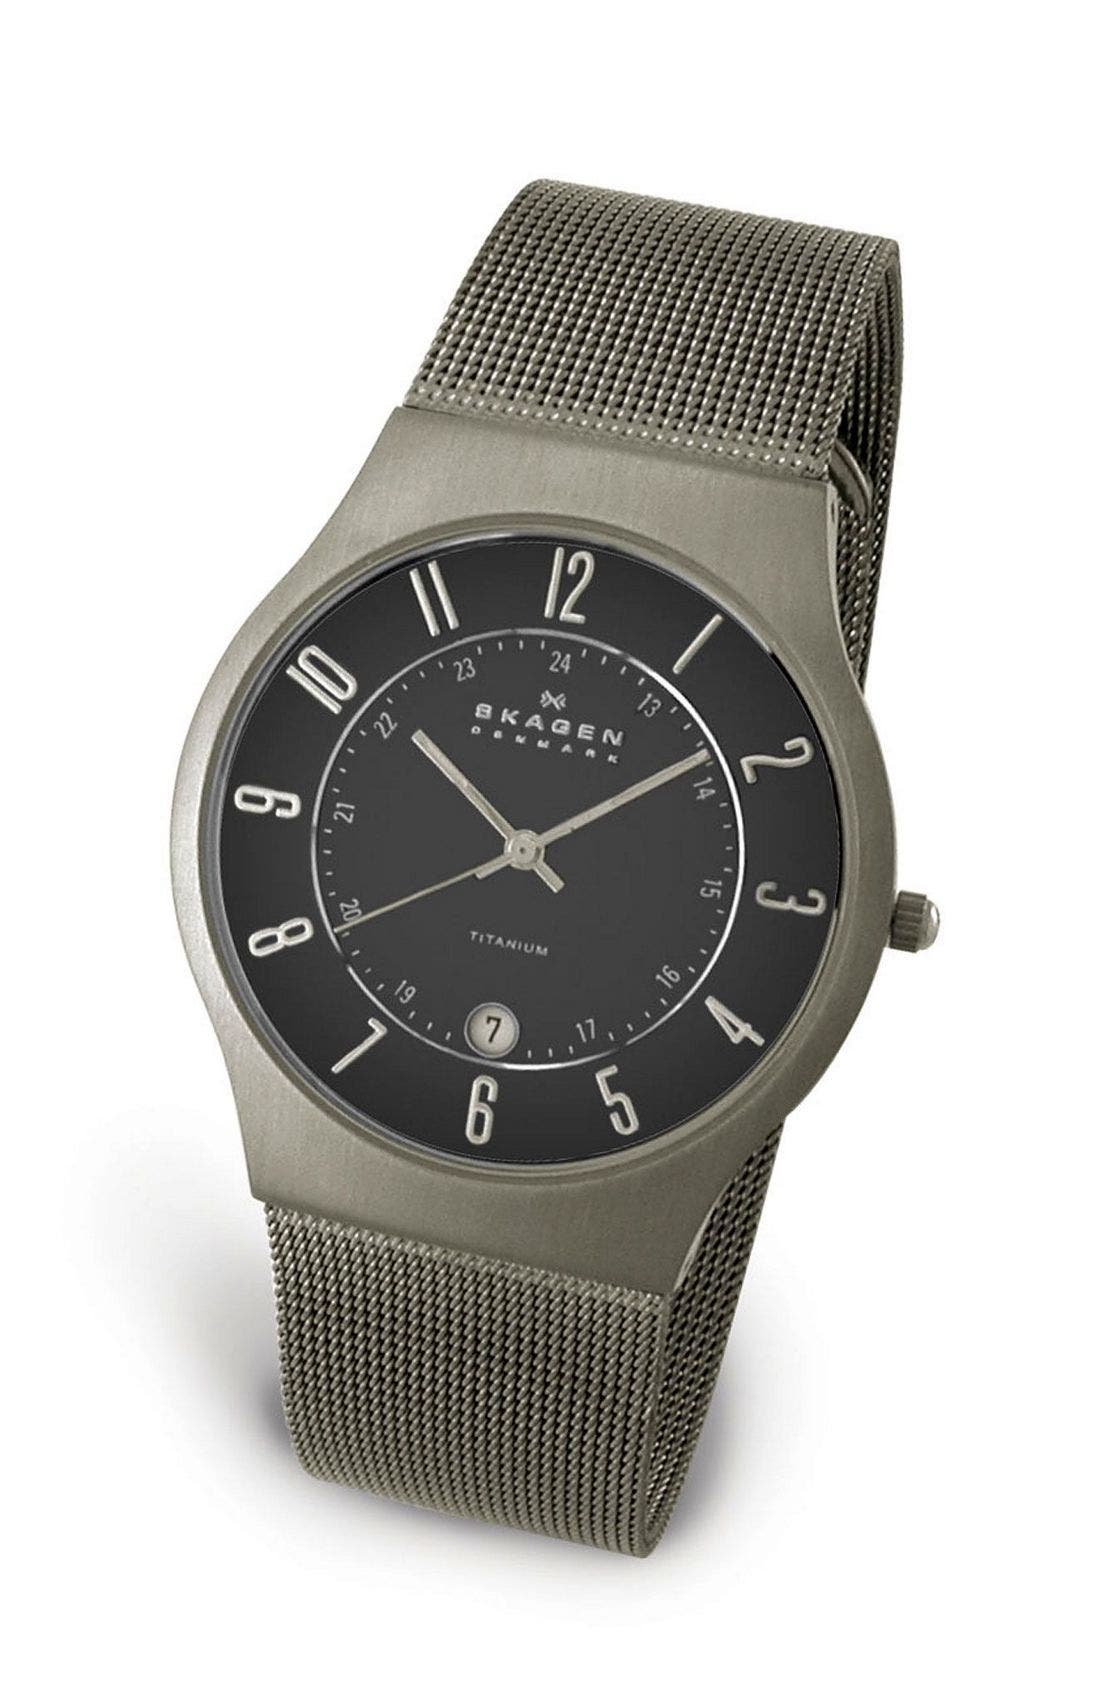 'Grenen' Titanium Case Watch,                             Main thumbnail 7, color,